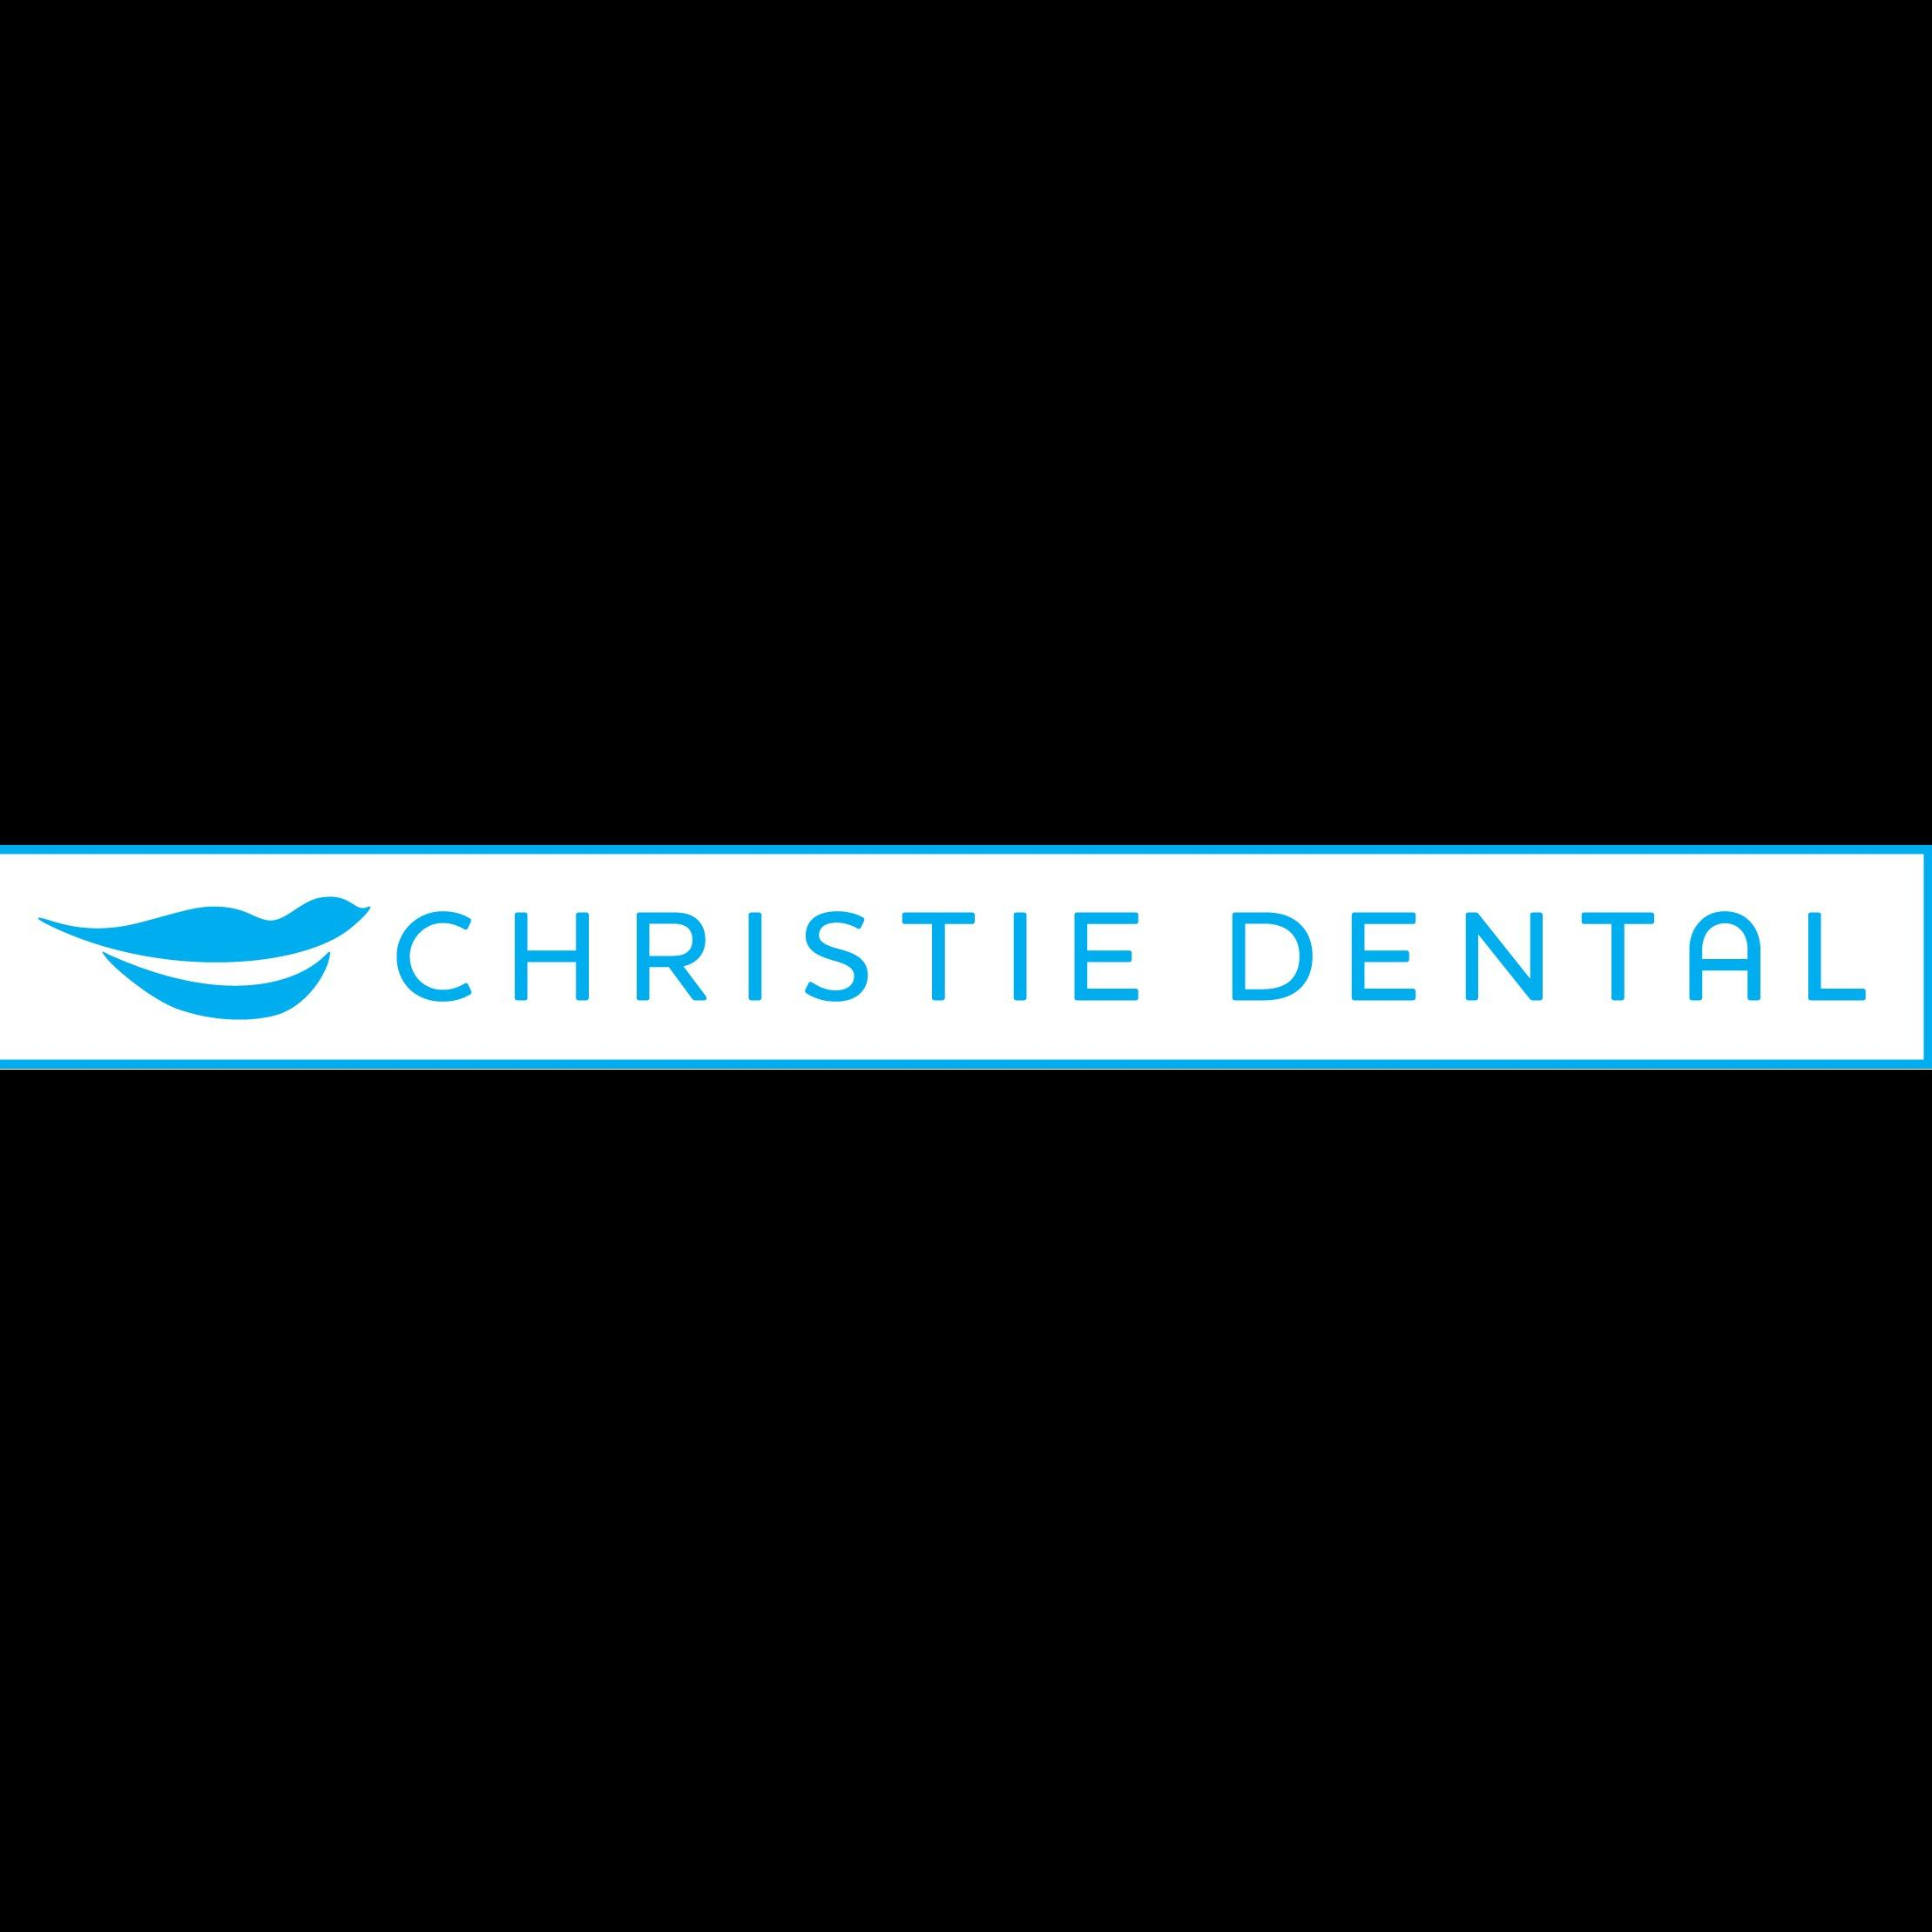 Christie Dental of Titusville - Titusville, FL - Dentists & Dental Services